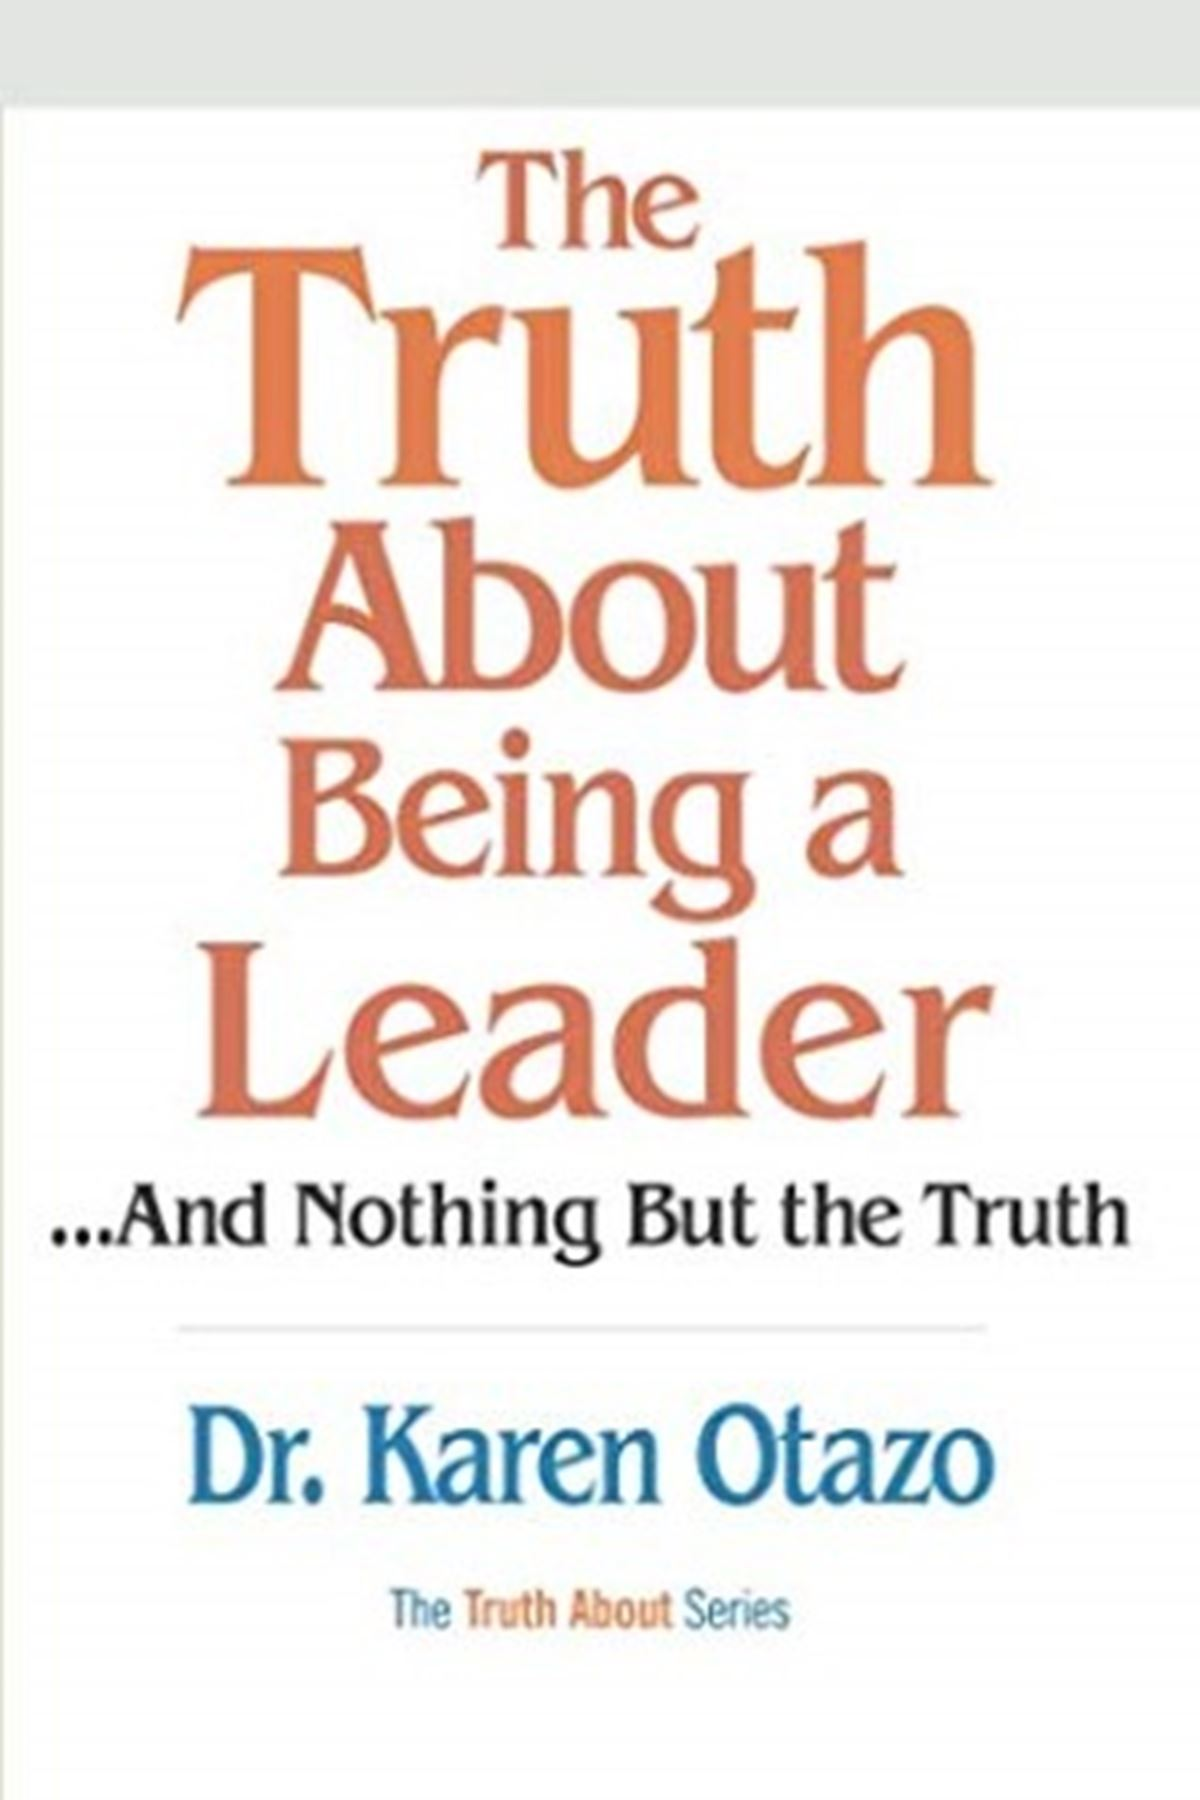 DR. KAREN OTAZO - THE TRURH ABOUTH BEİNG A LEADER